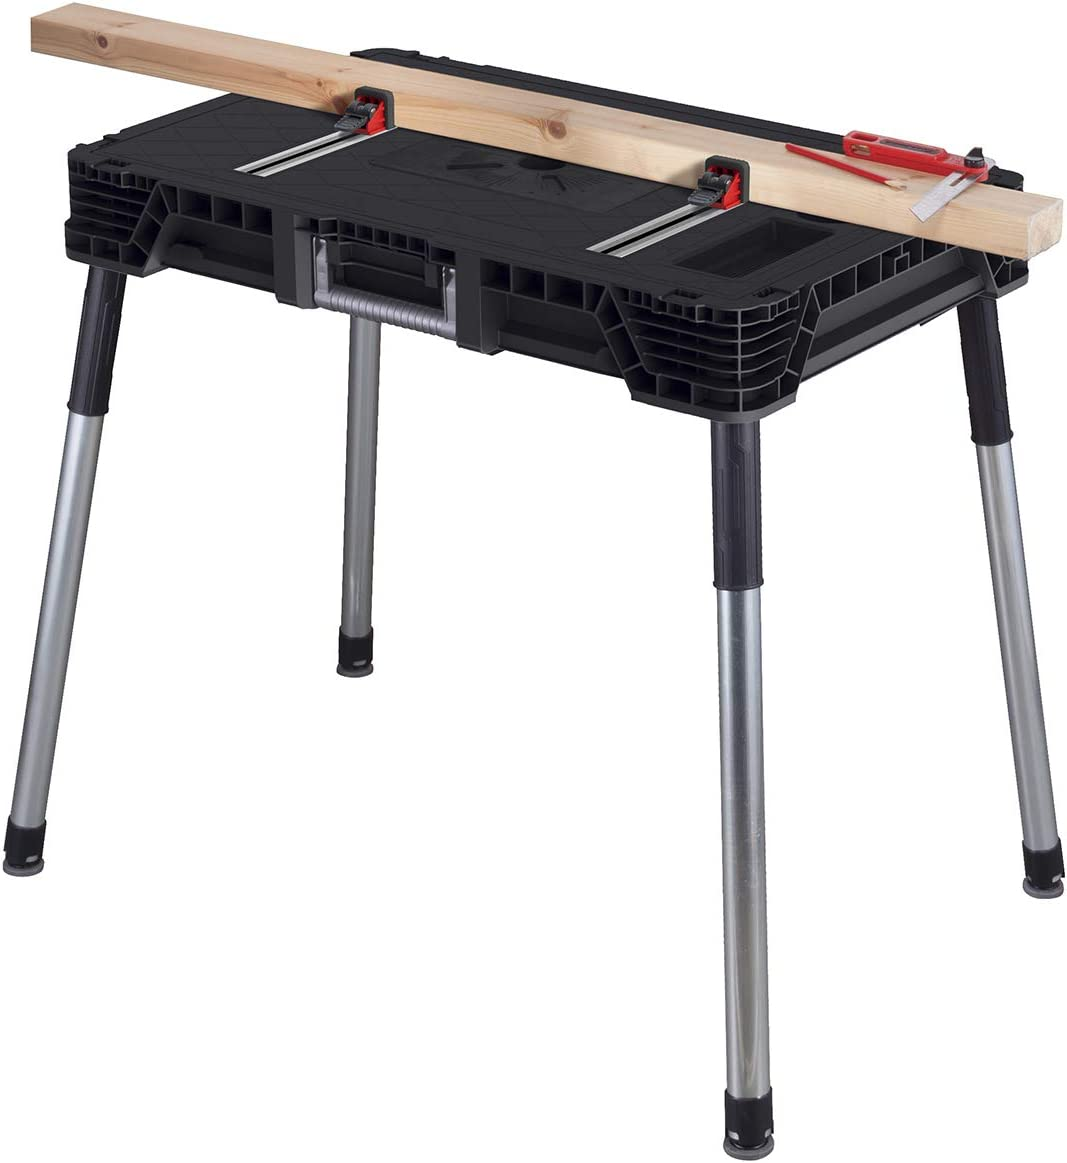 Keter Portable Work Table